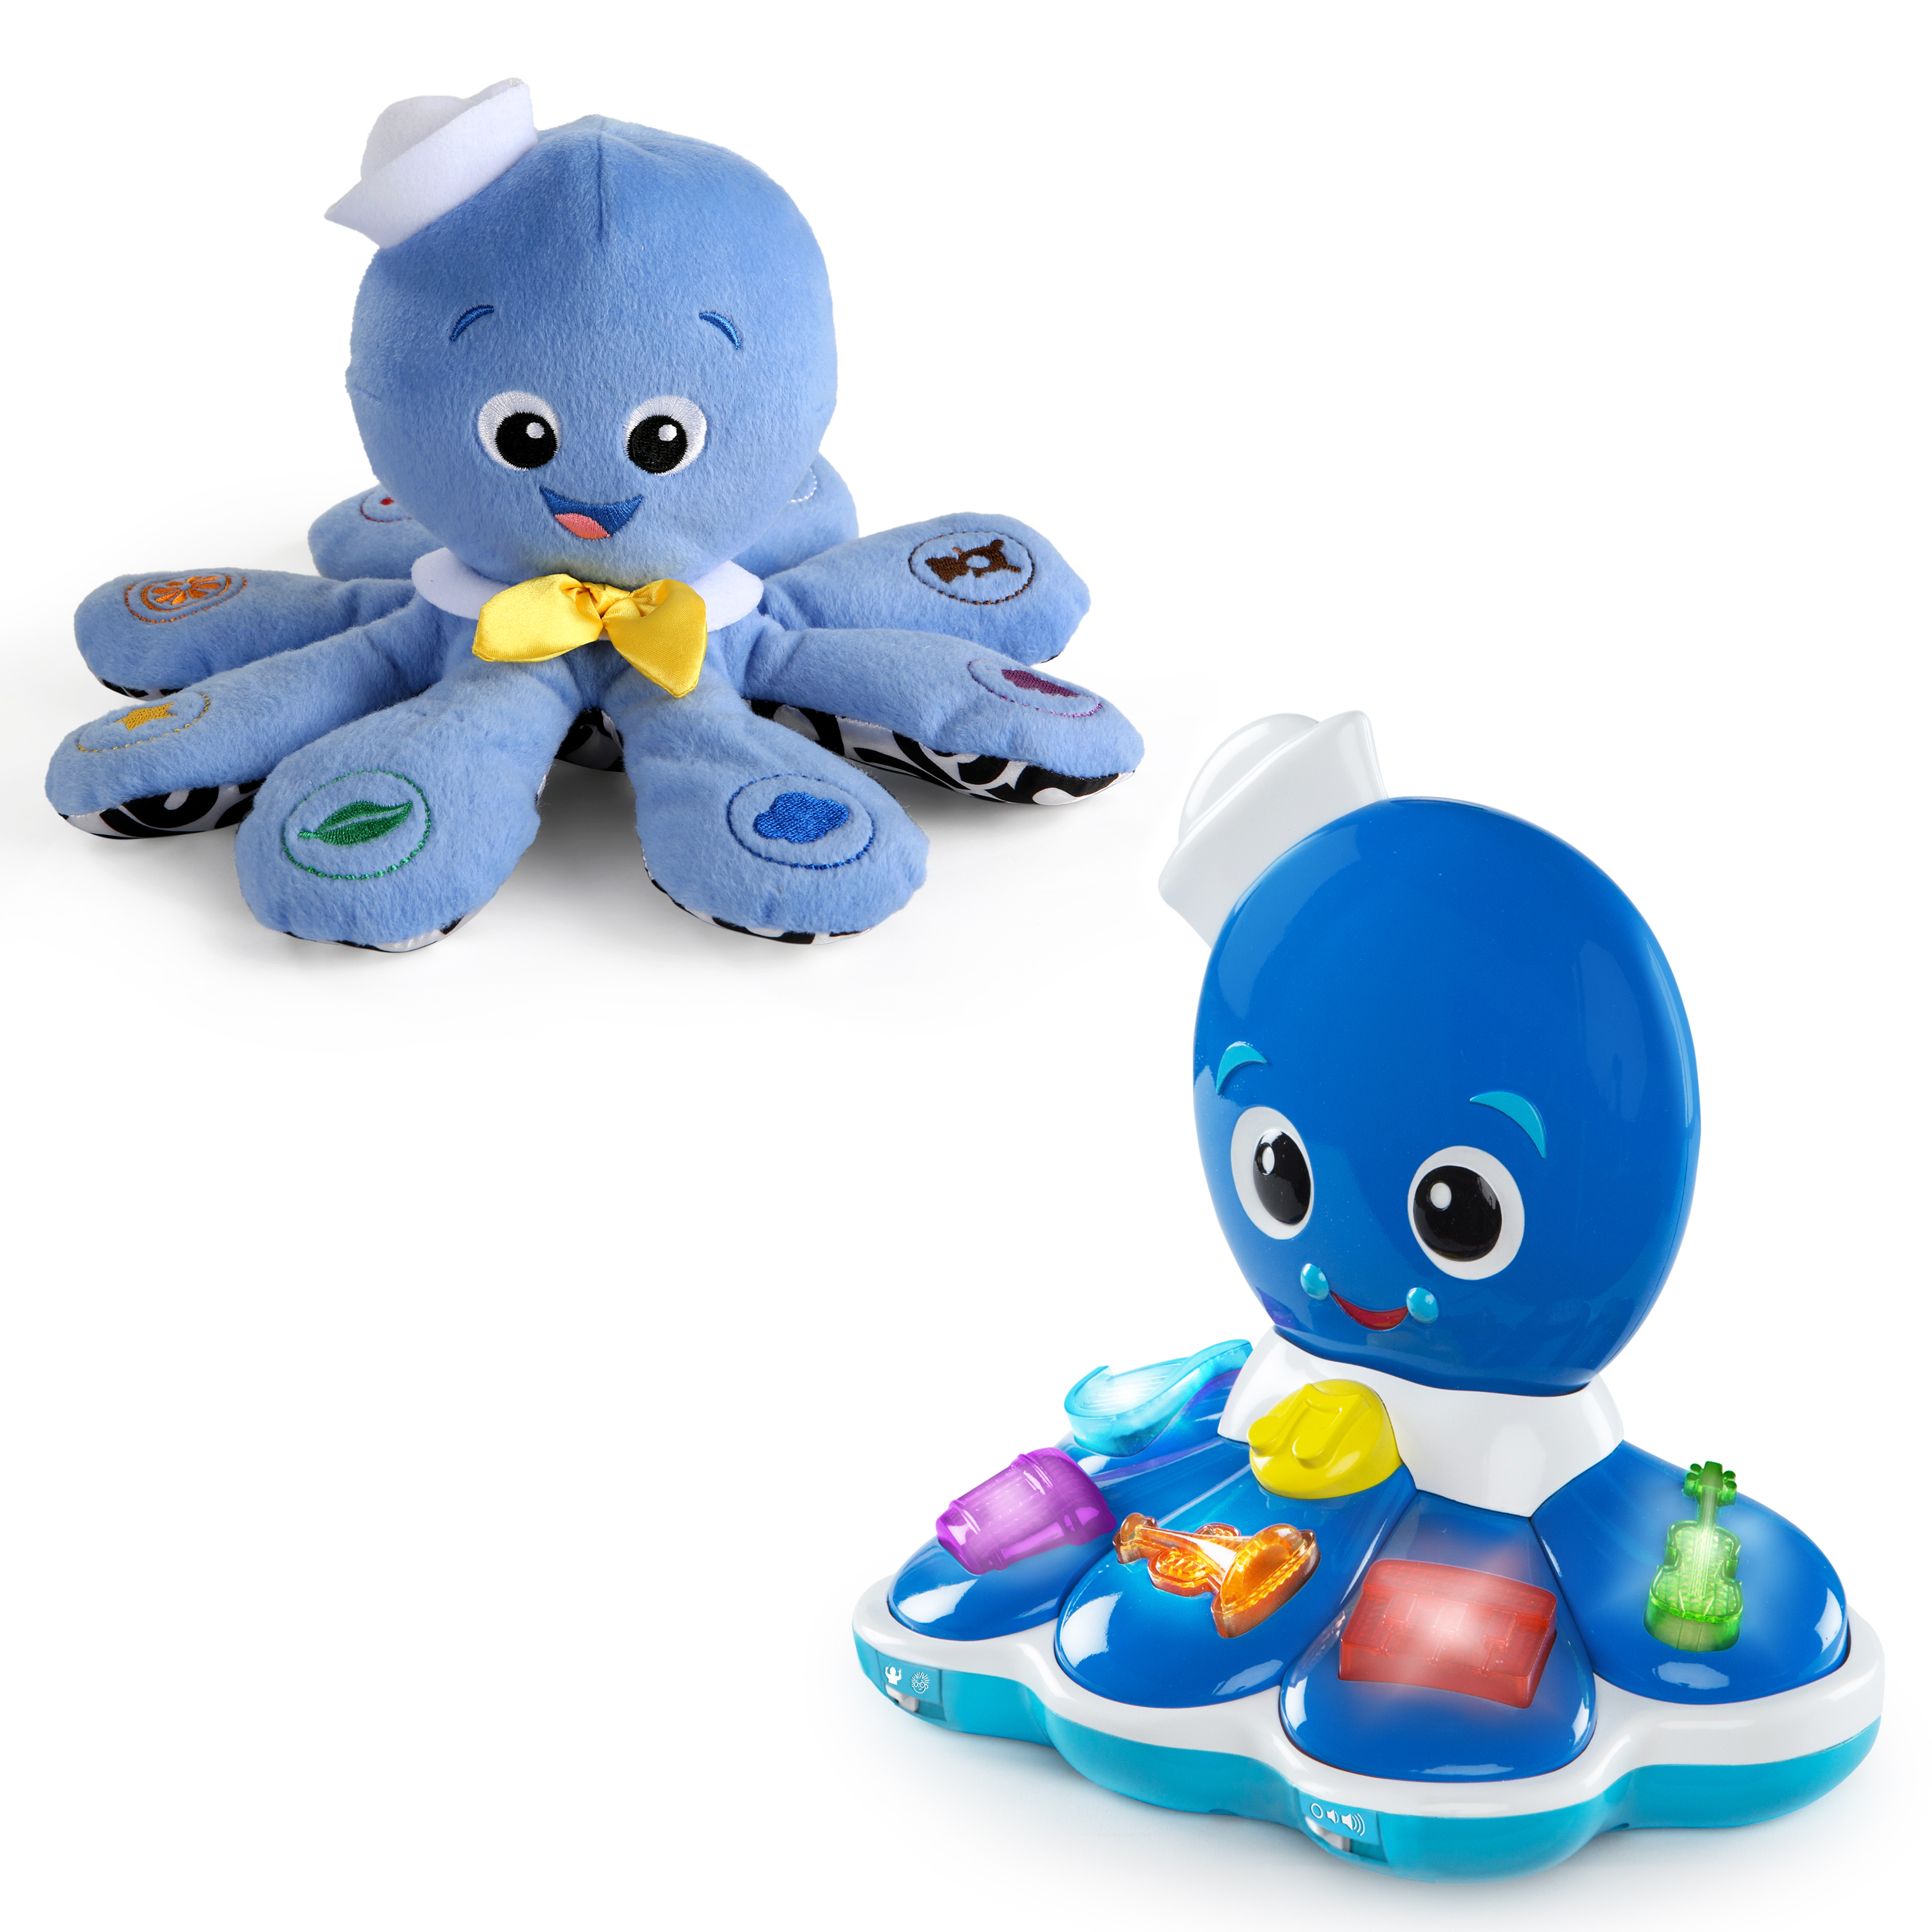 Octoplaytime Ocean Toy Bundle